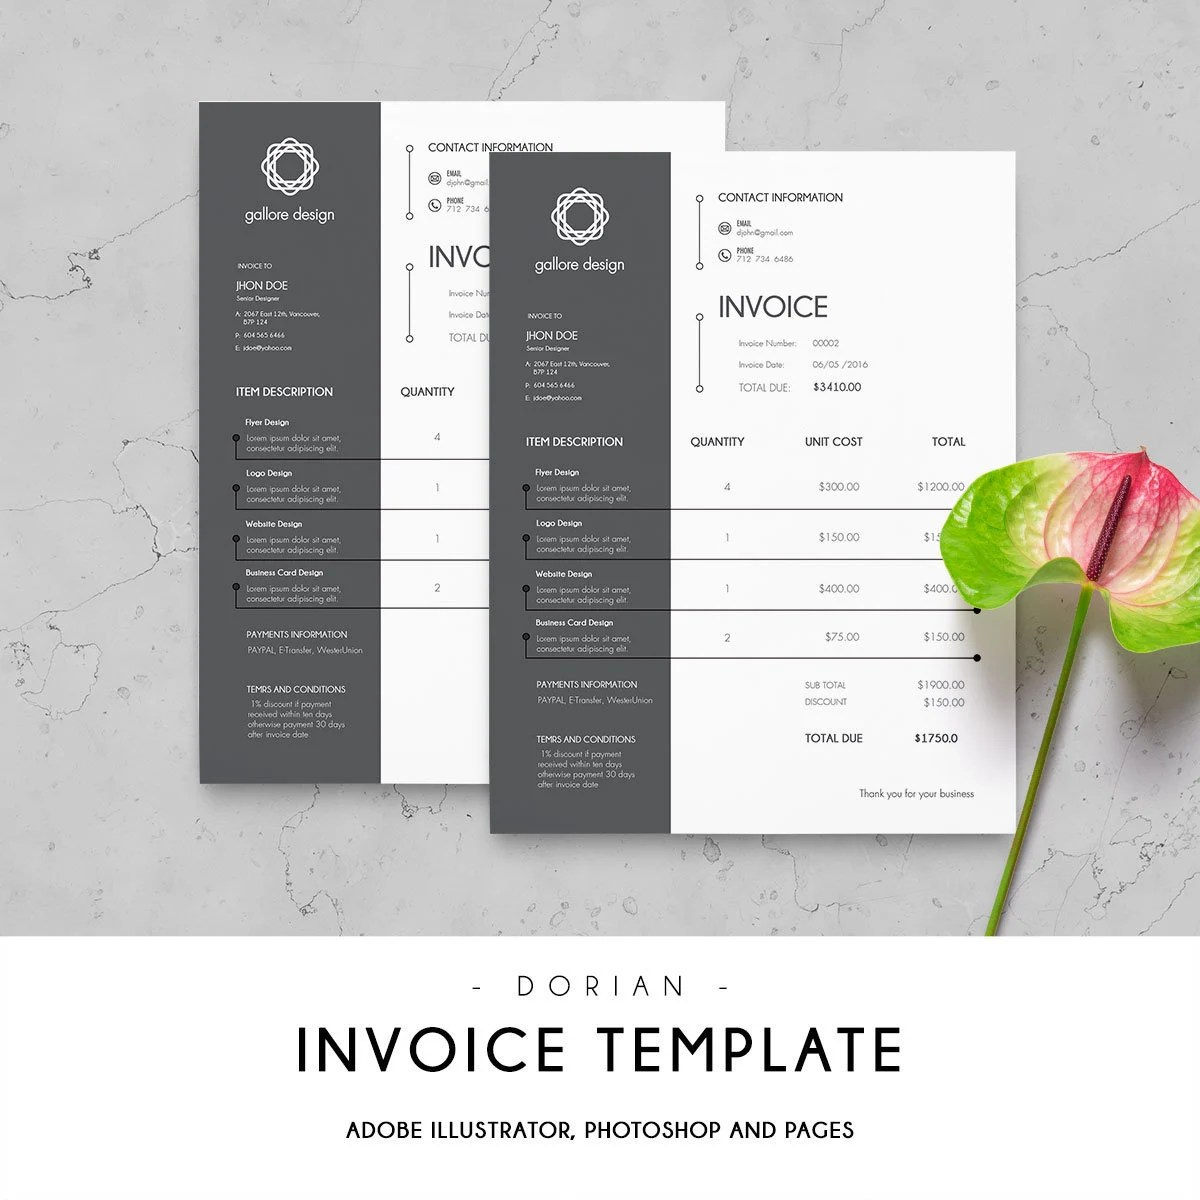 Invoice template   Etsy Printable Invoice Template   Invoice Design   Business Templates   Template    Modern Invoice   Receipt Template   Billing Template